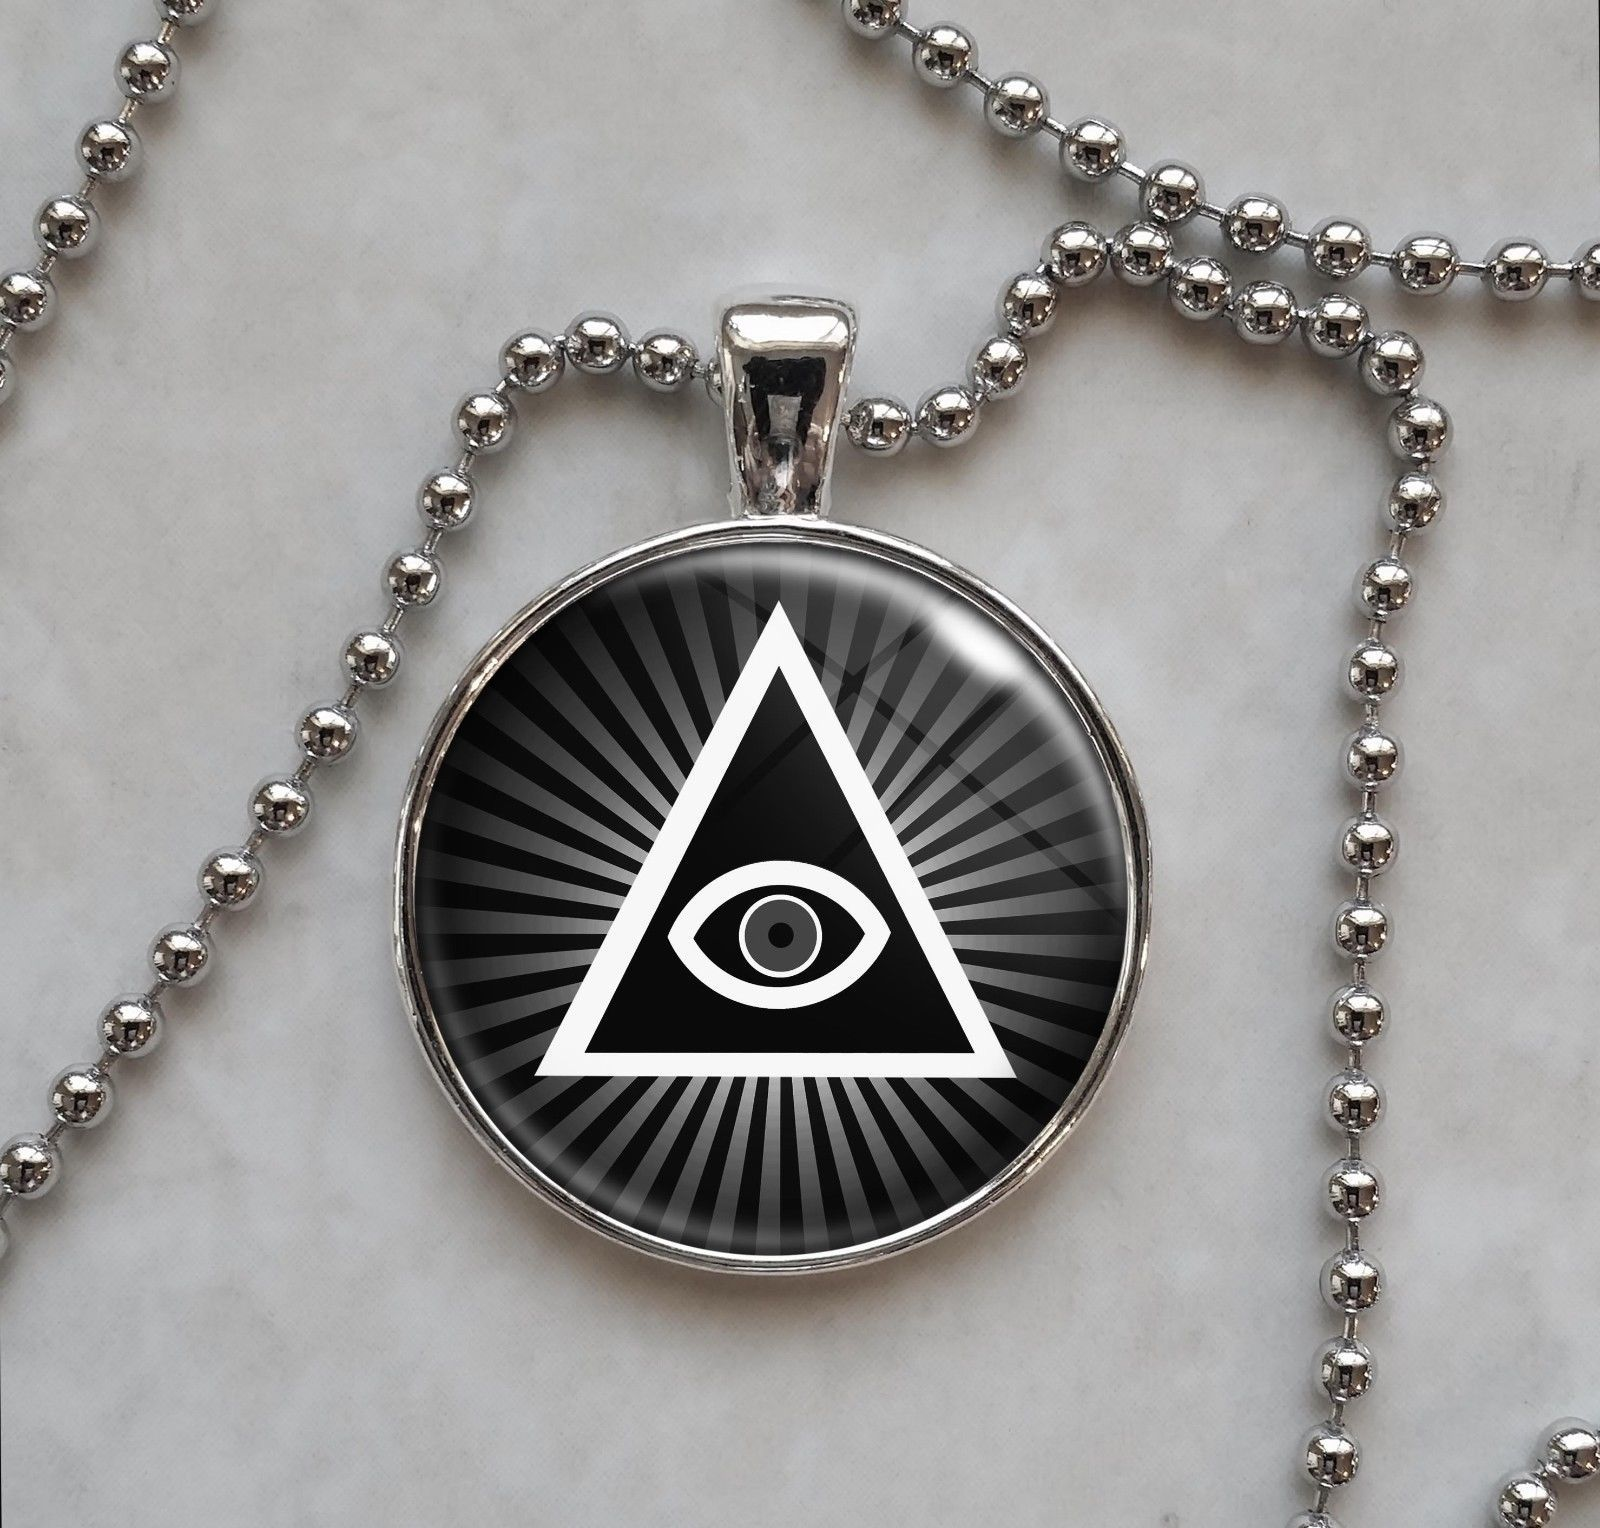 Primary image for Illuminati All Seeing Eye Pyramid Pendant Necklace